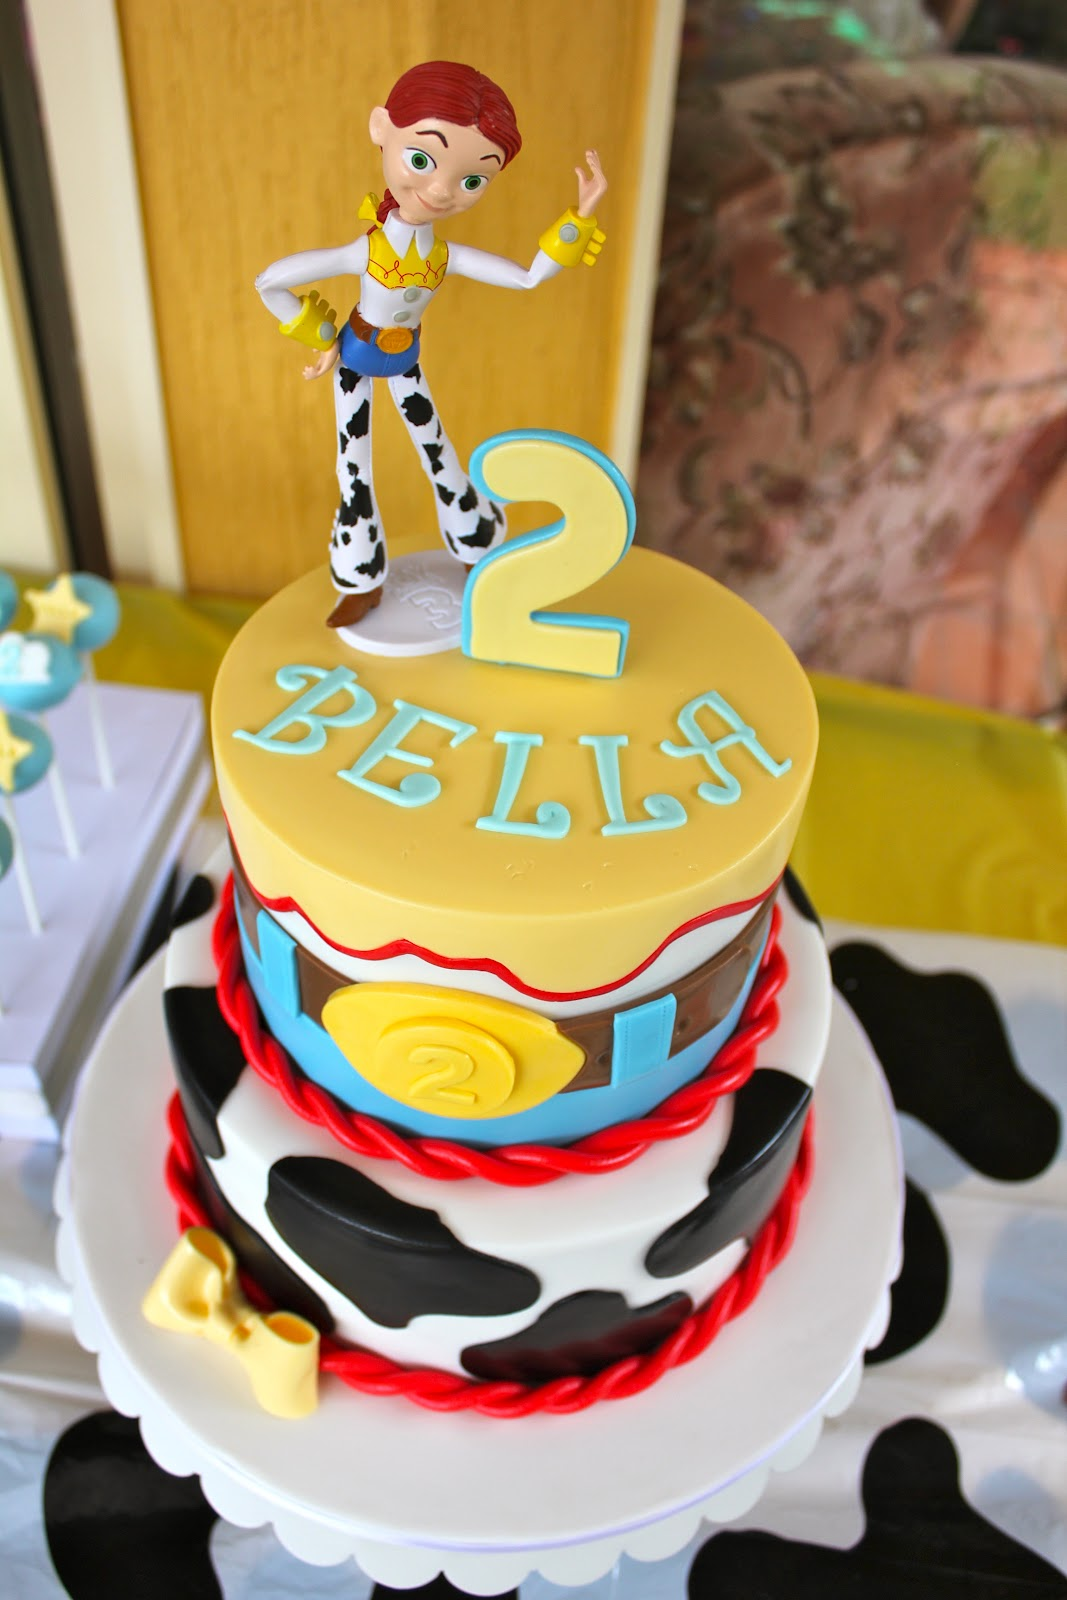 Pasteles Jessy Toy Story Cakes And Cake